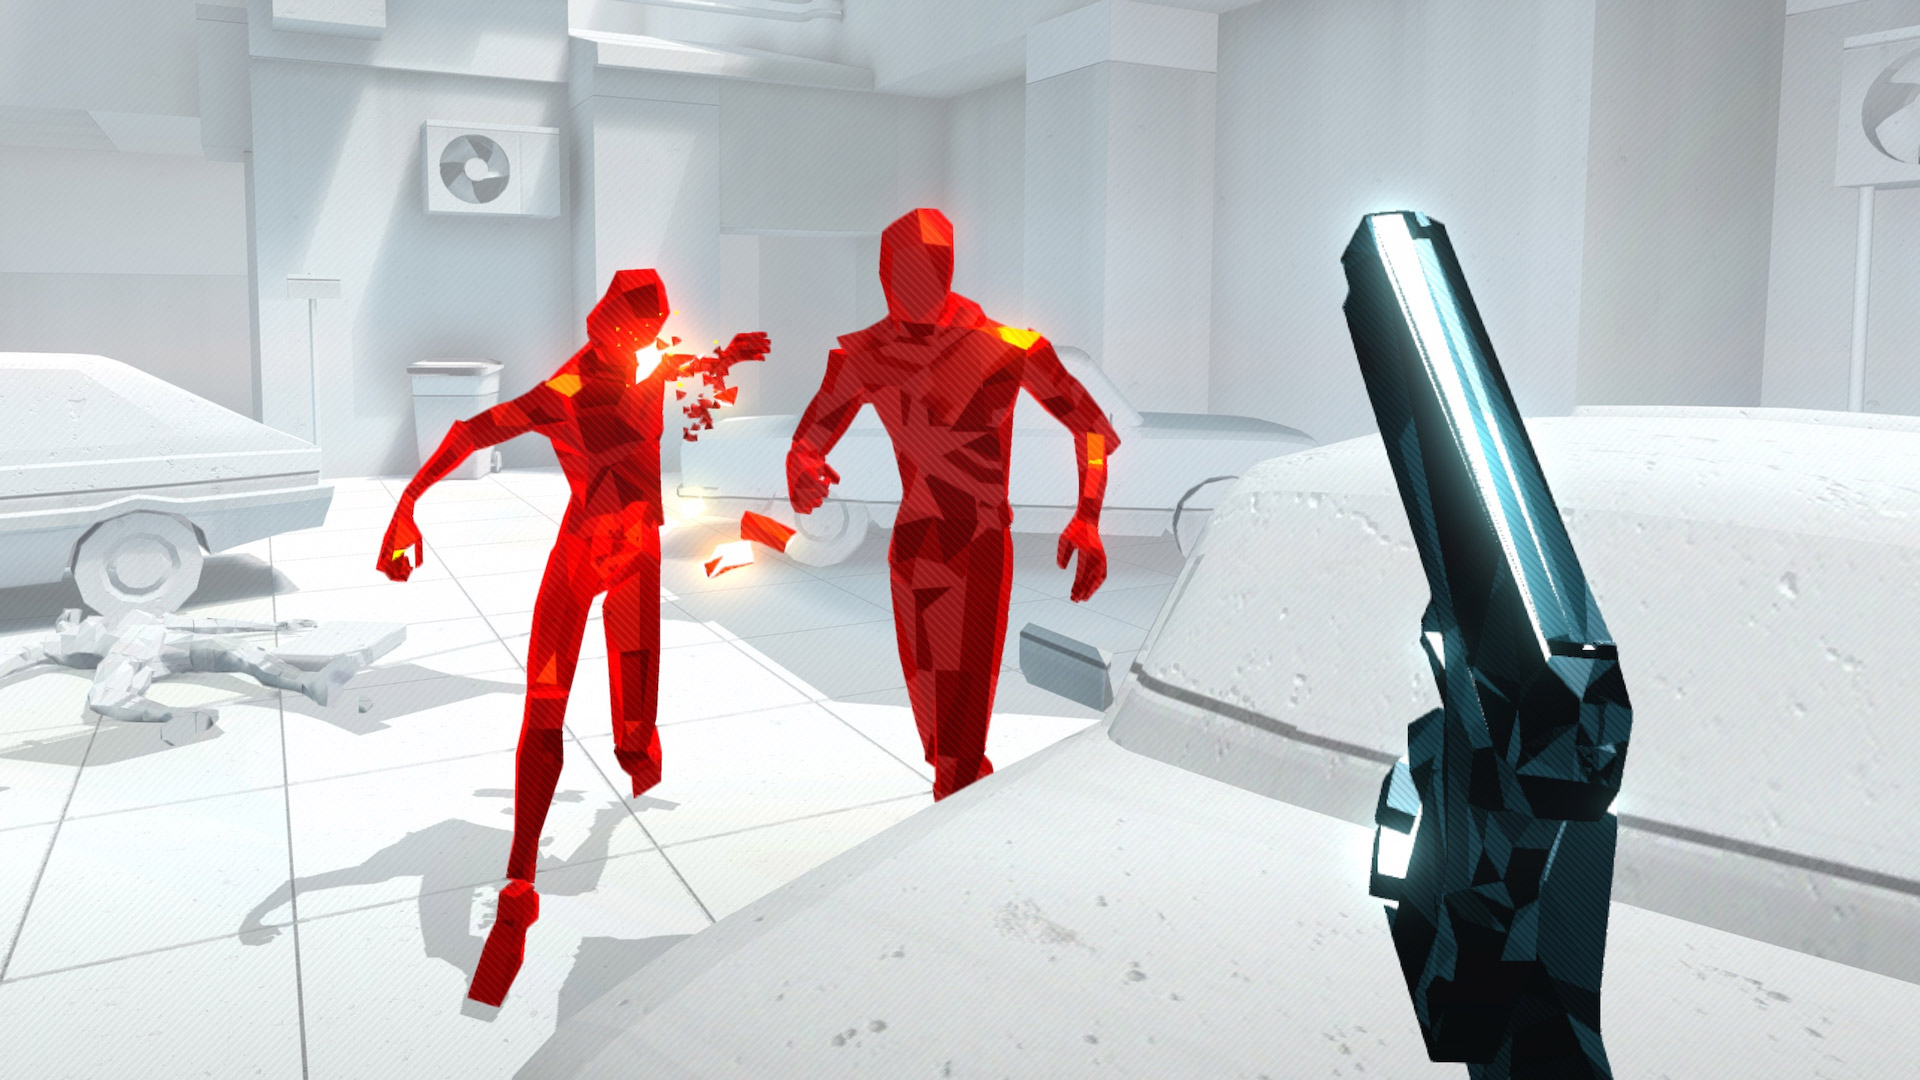 Superhot VR' Grossed Over $2 Million in Only 1 Week This Holiday ...